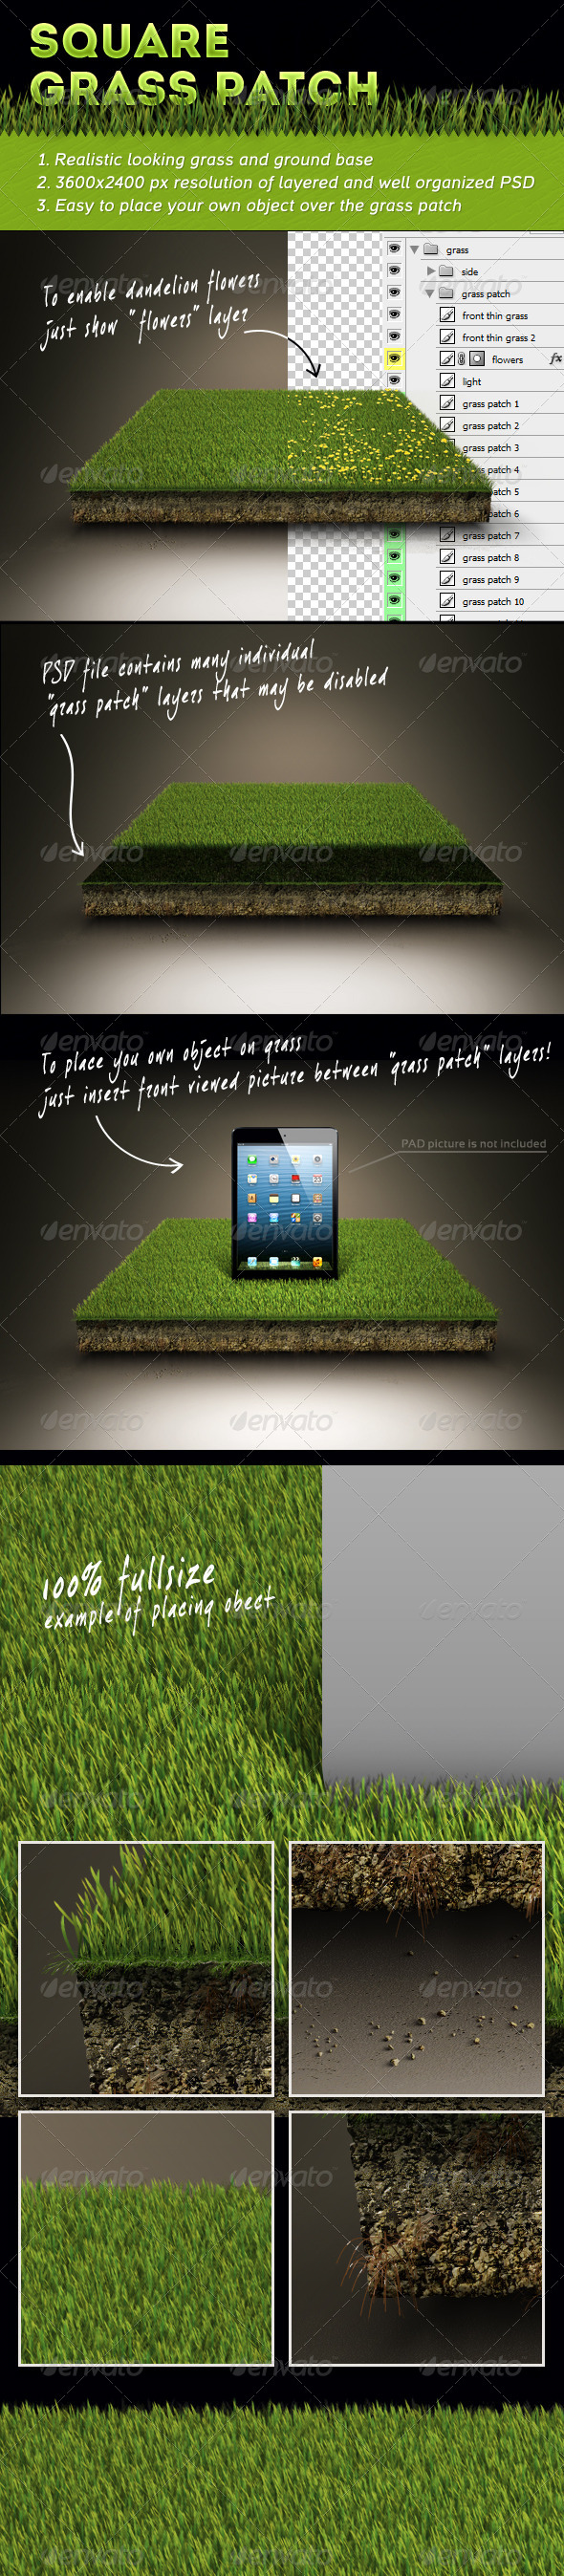 Square Grass Patch - Nature Backgrounds